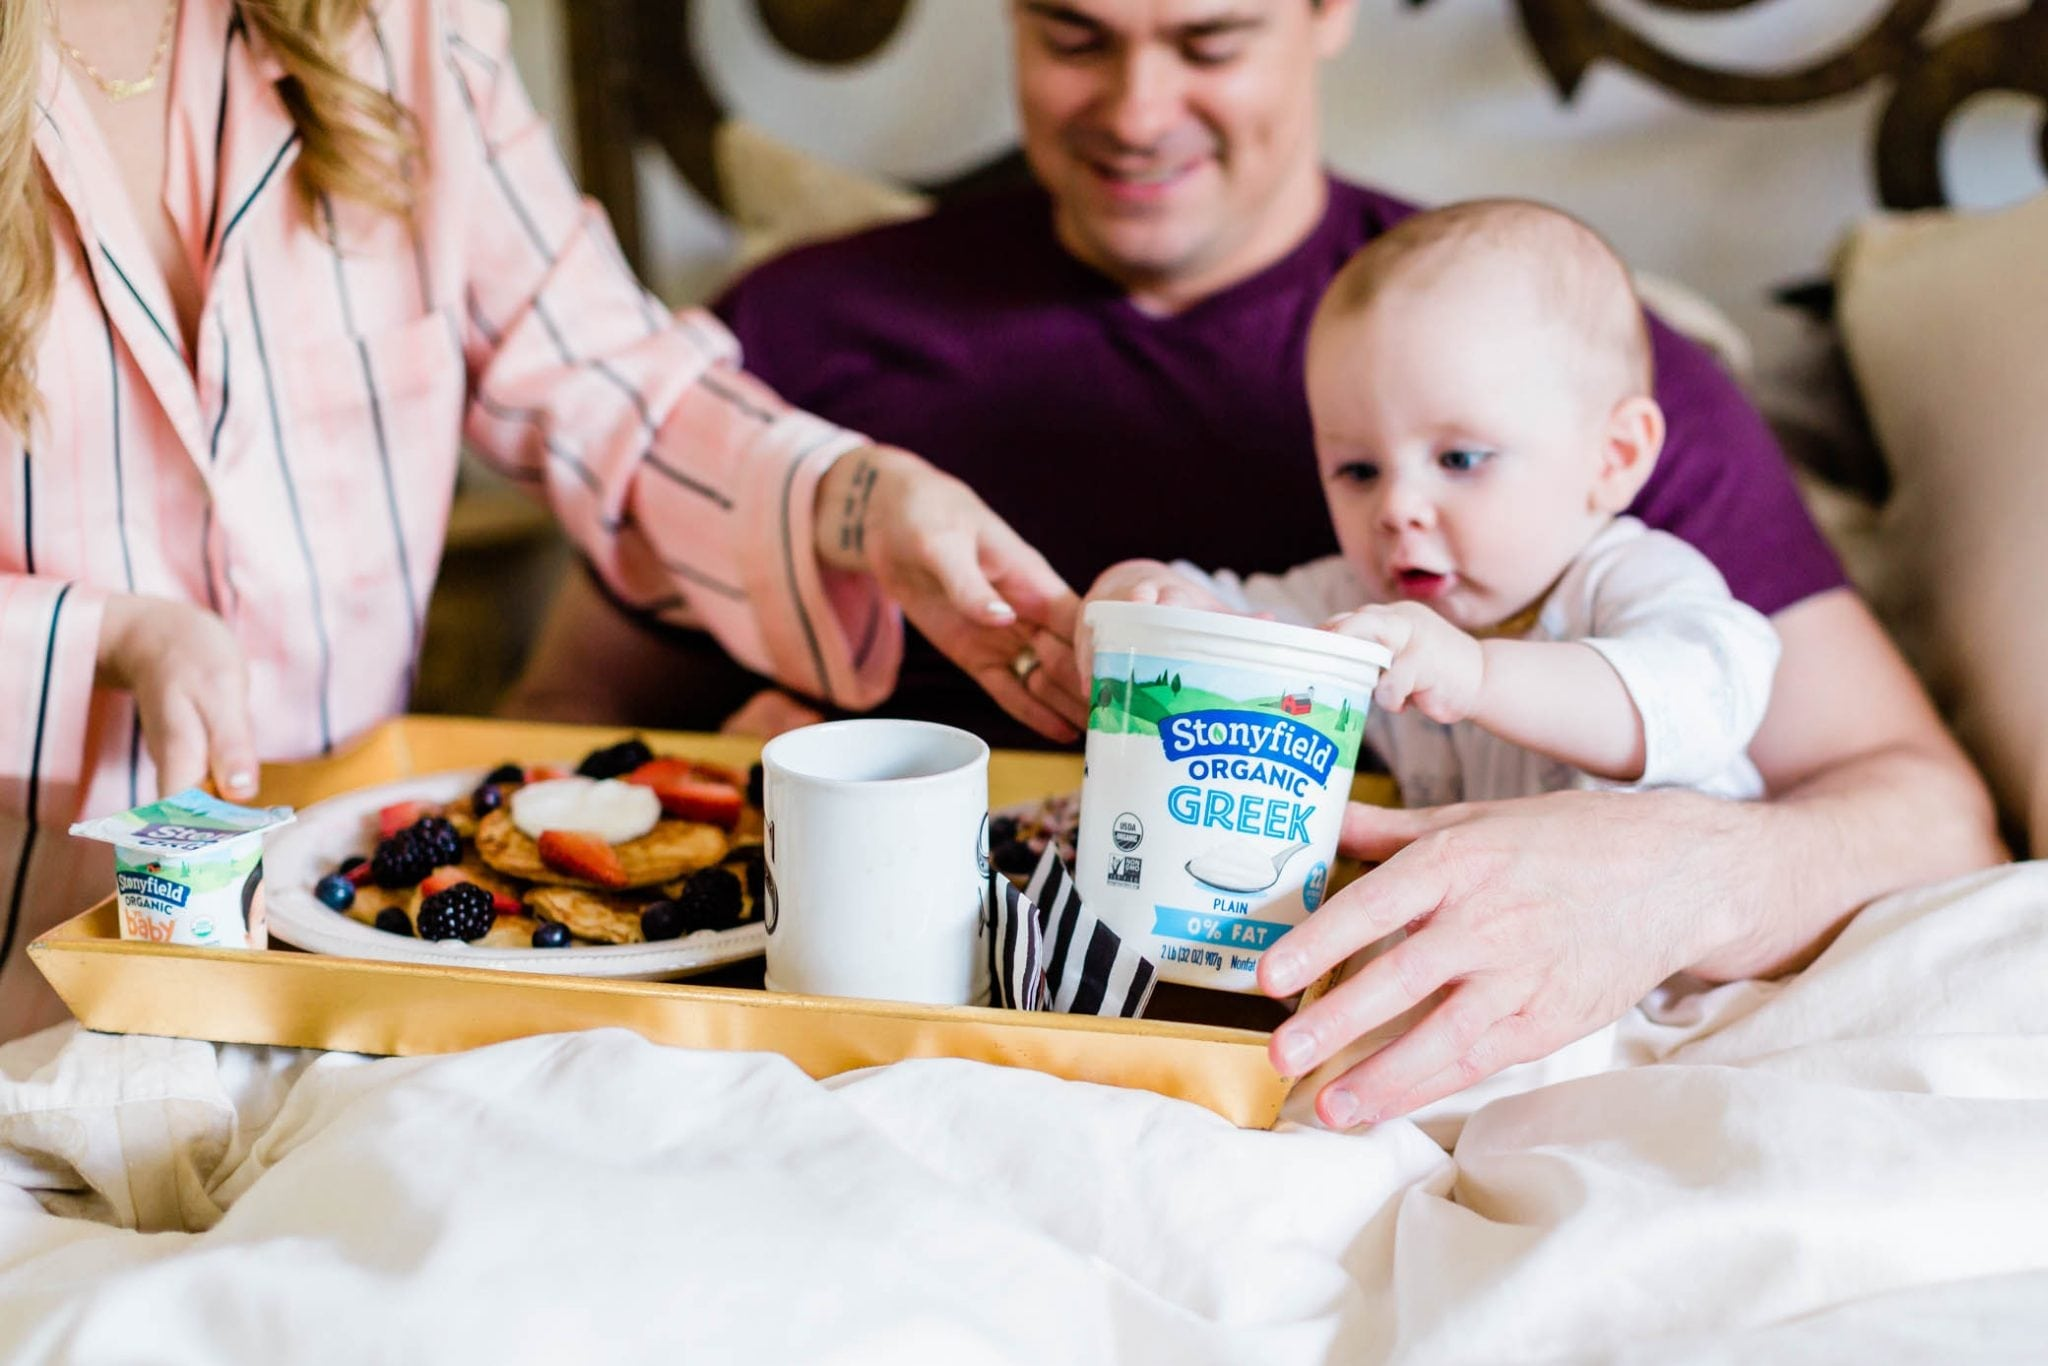 Breakfast in Bed Recipes for Father's Day   Baby Chick